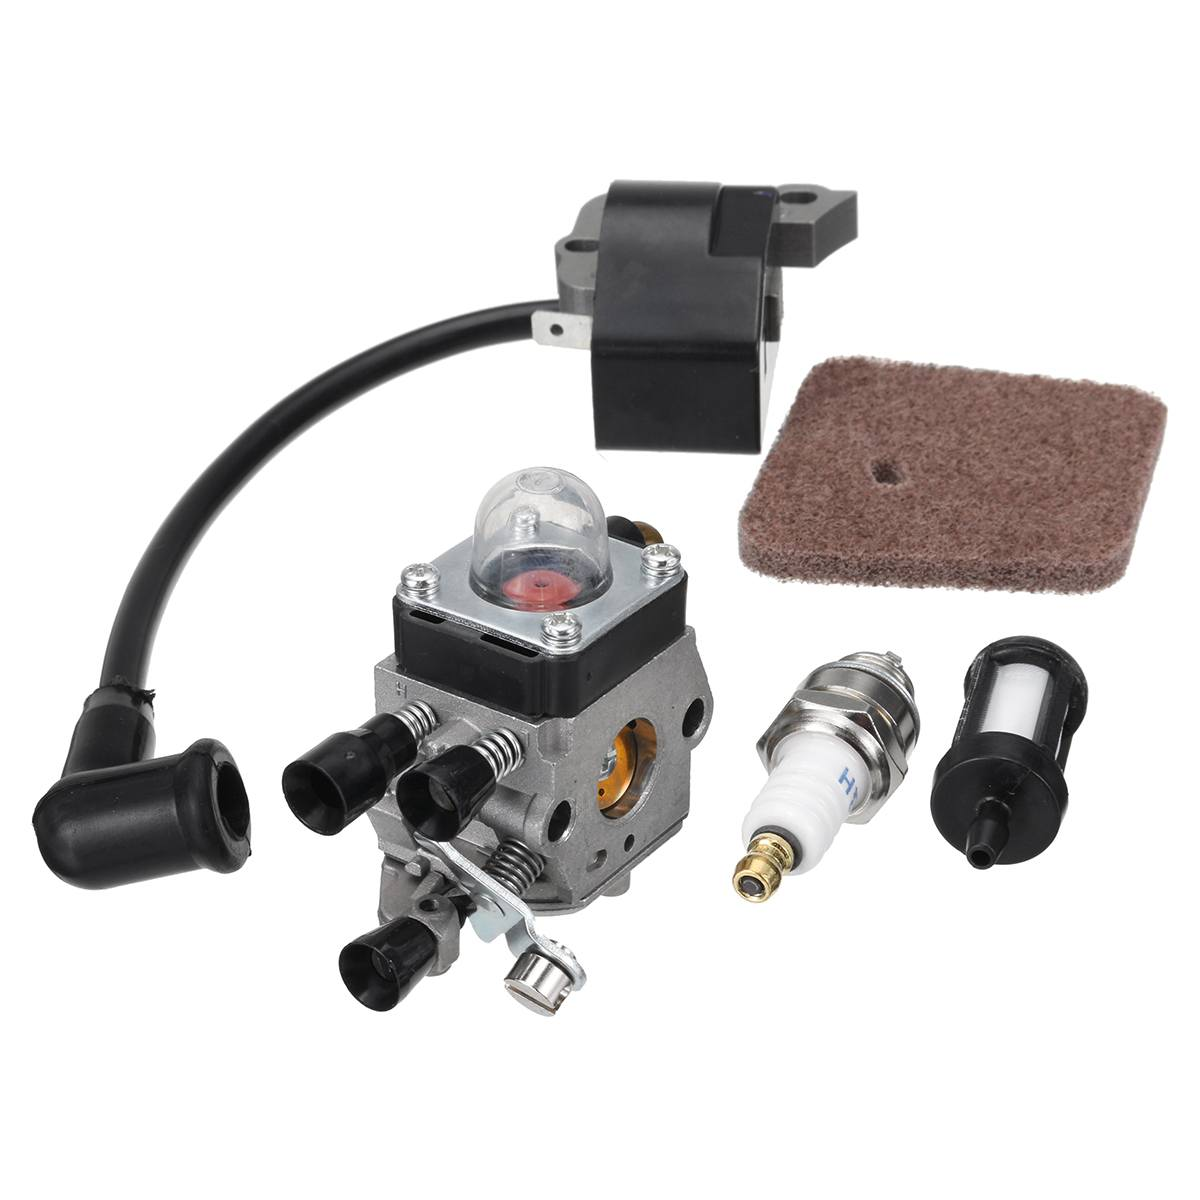 Ignition Coil <font><b>Carburetor</b></font> Carb Kit <font><b>For</b></font> <font><b>STIHL</b></font> <font><b>FS38</b></font> <font><b>FS45</b></font> FS46 FS55 KM55R FS45C FC55 image